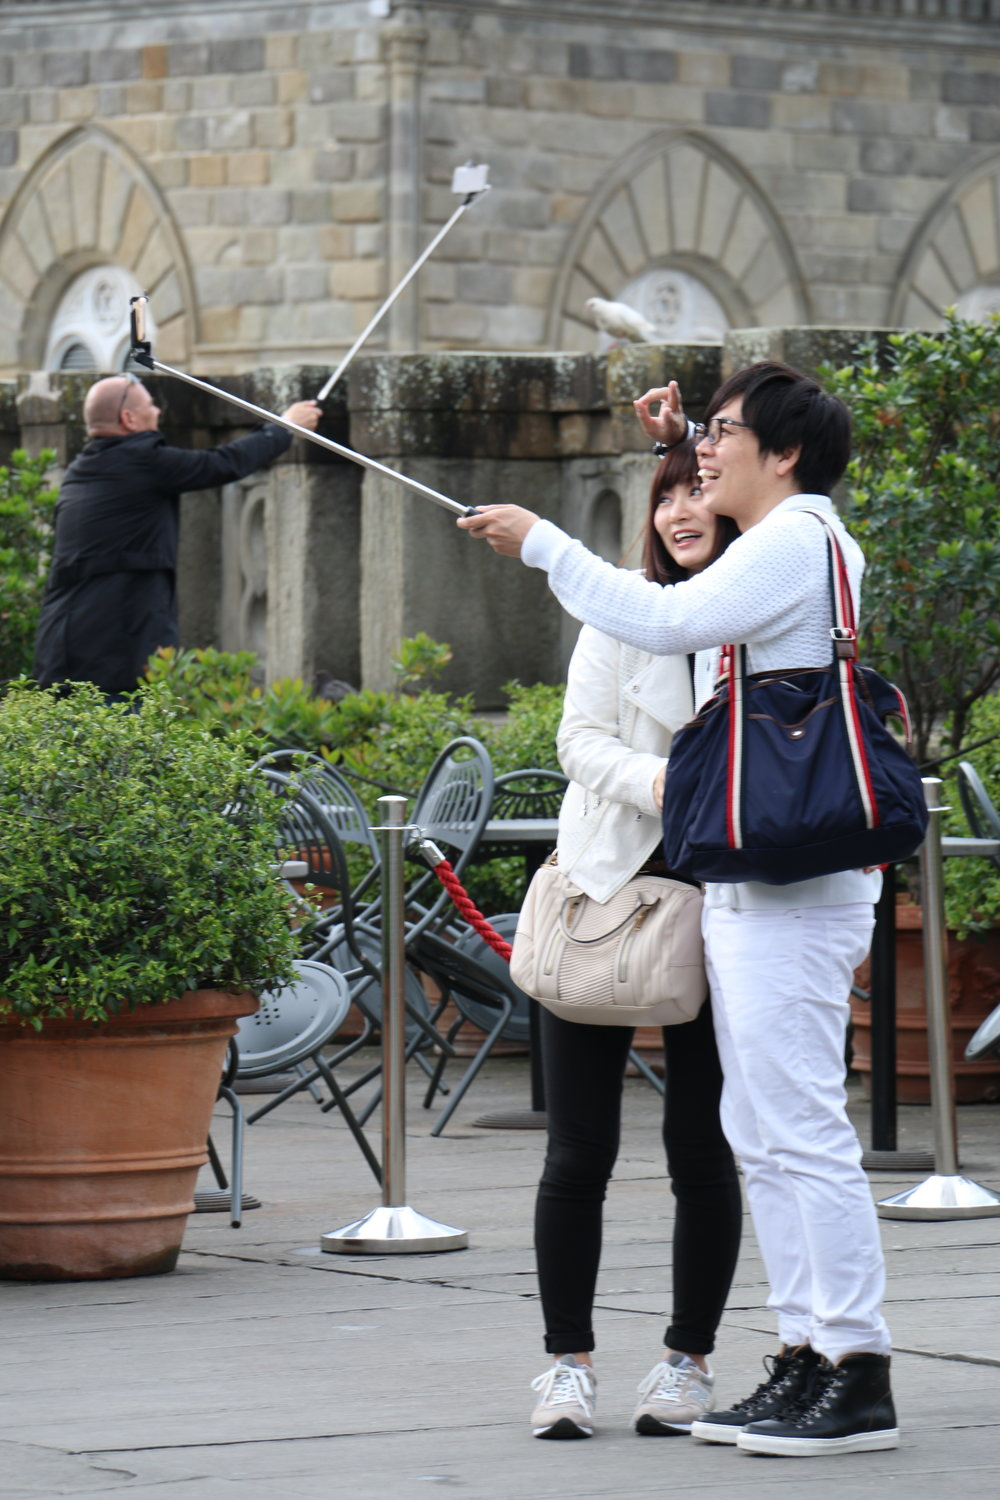 Tourists in Florence, Italy.